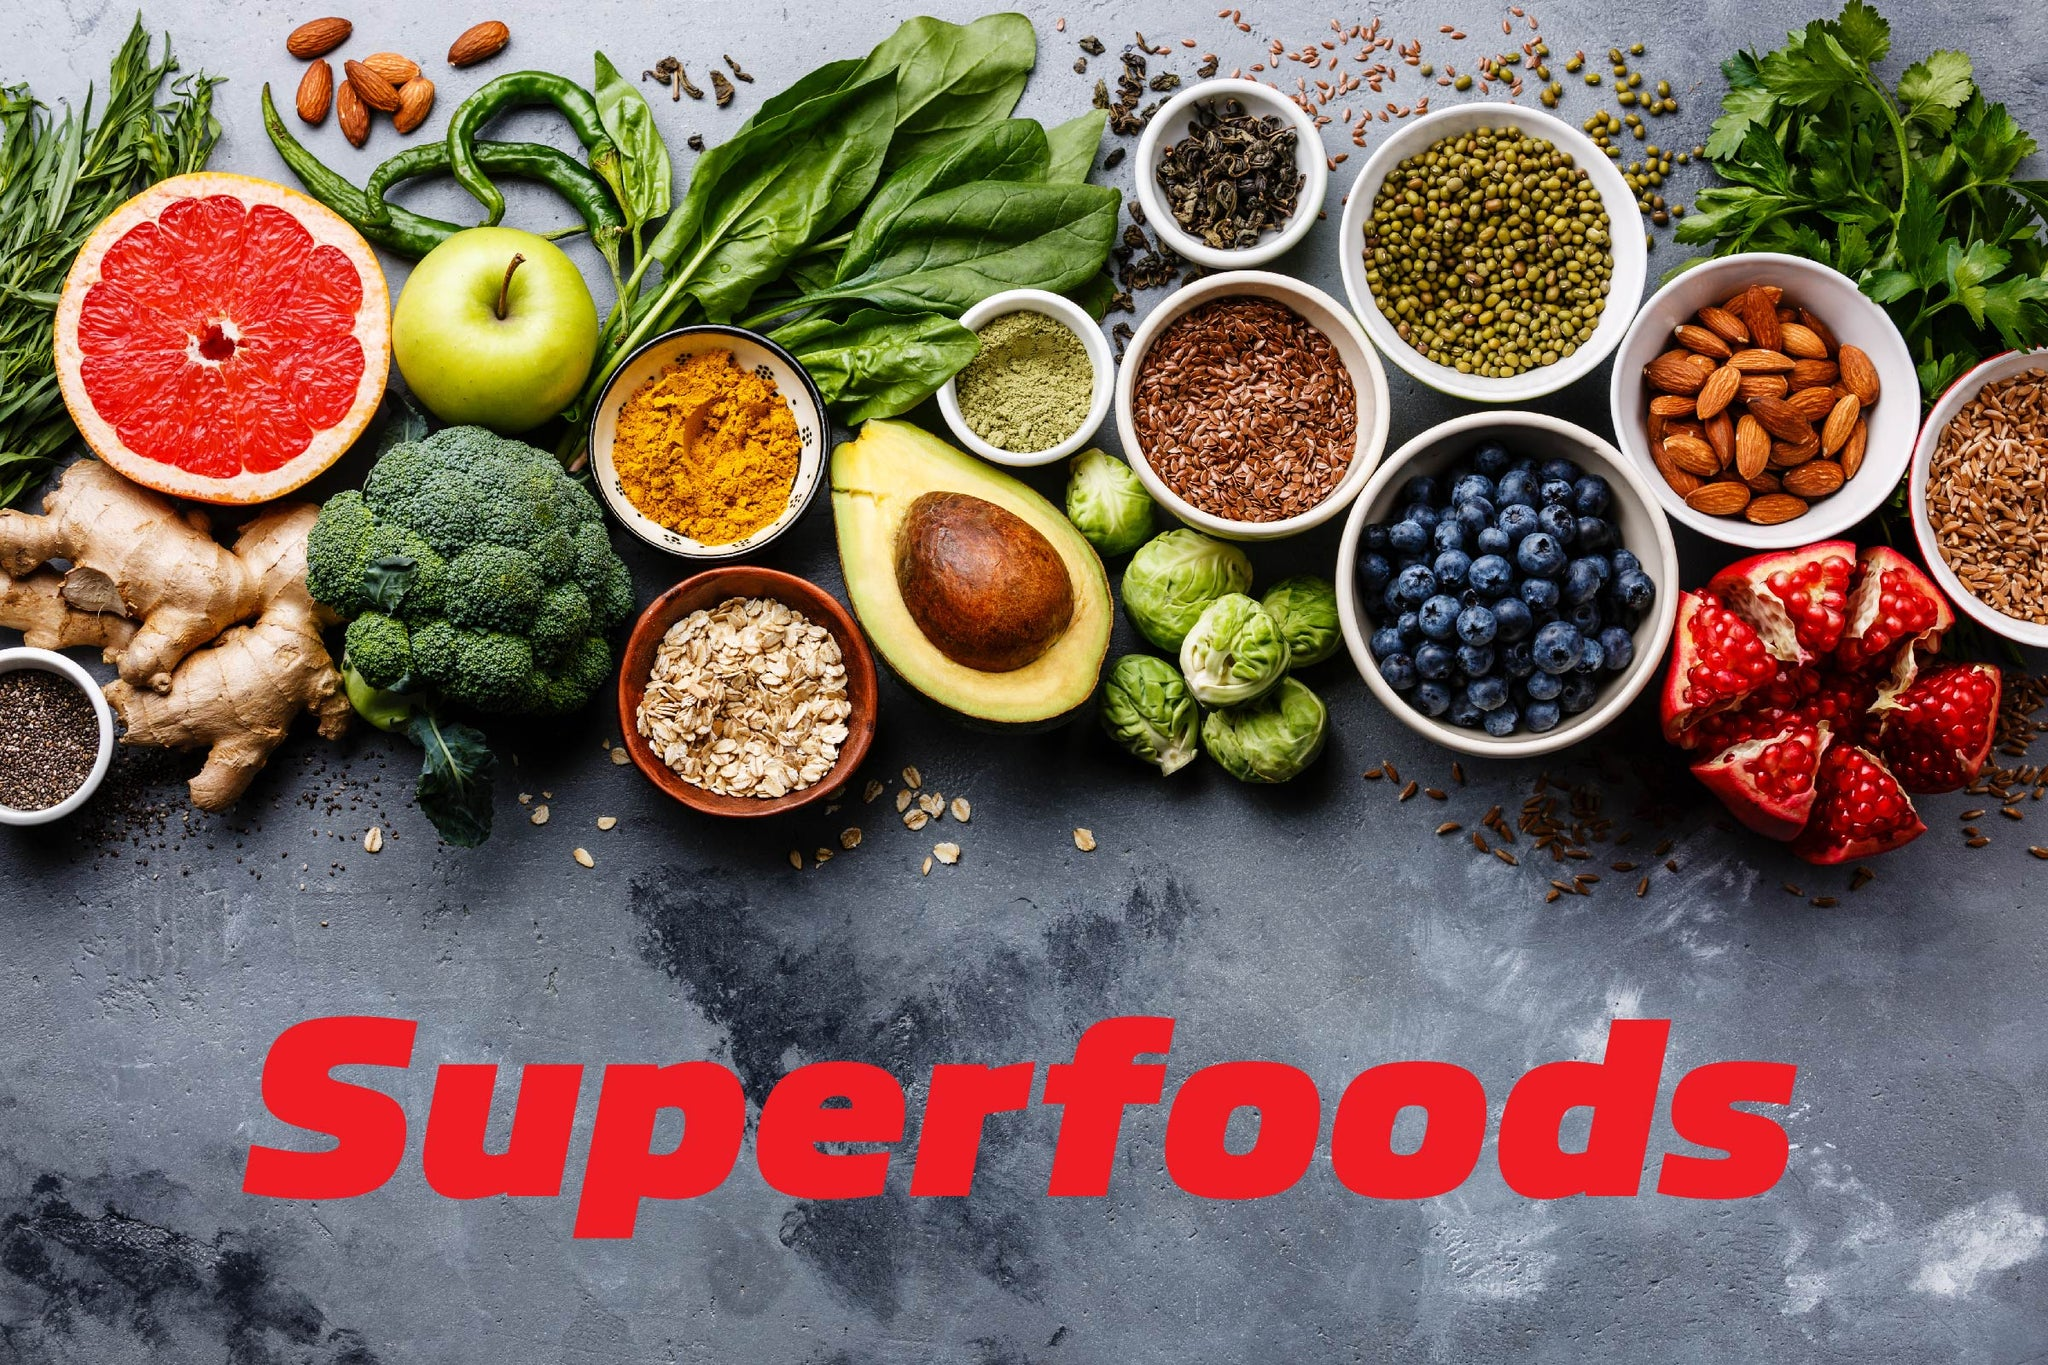 Superfoods for Your Fitness Goals